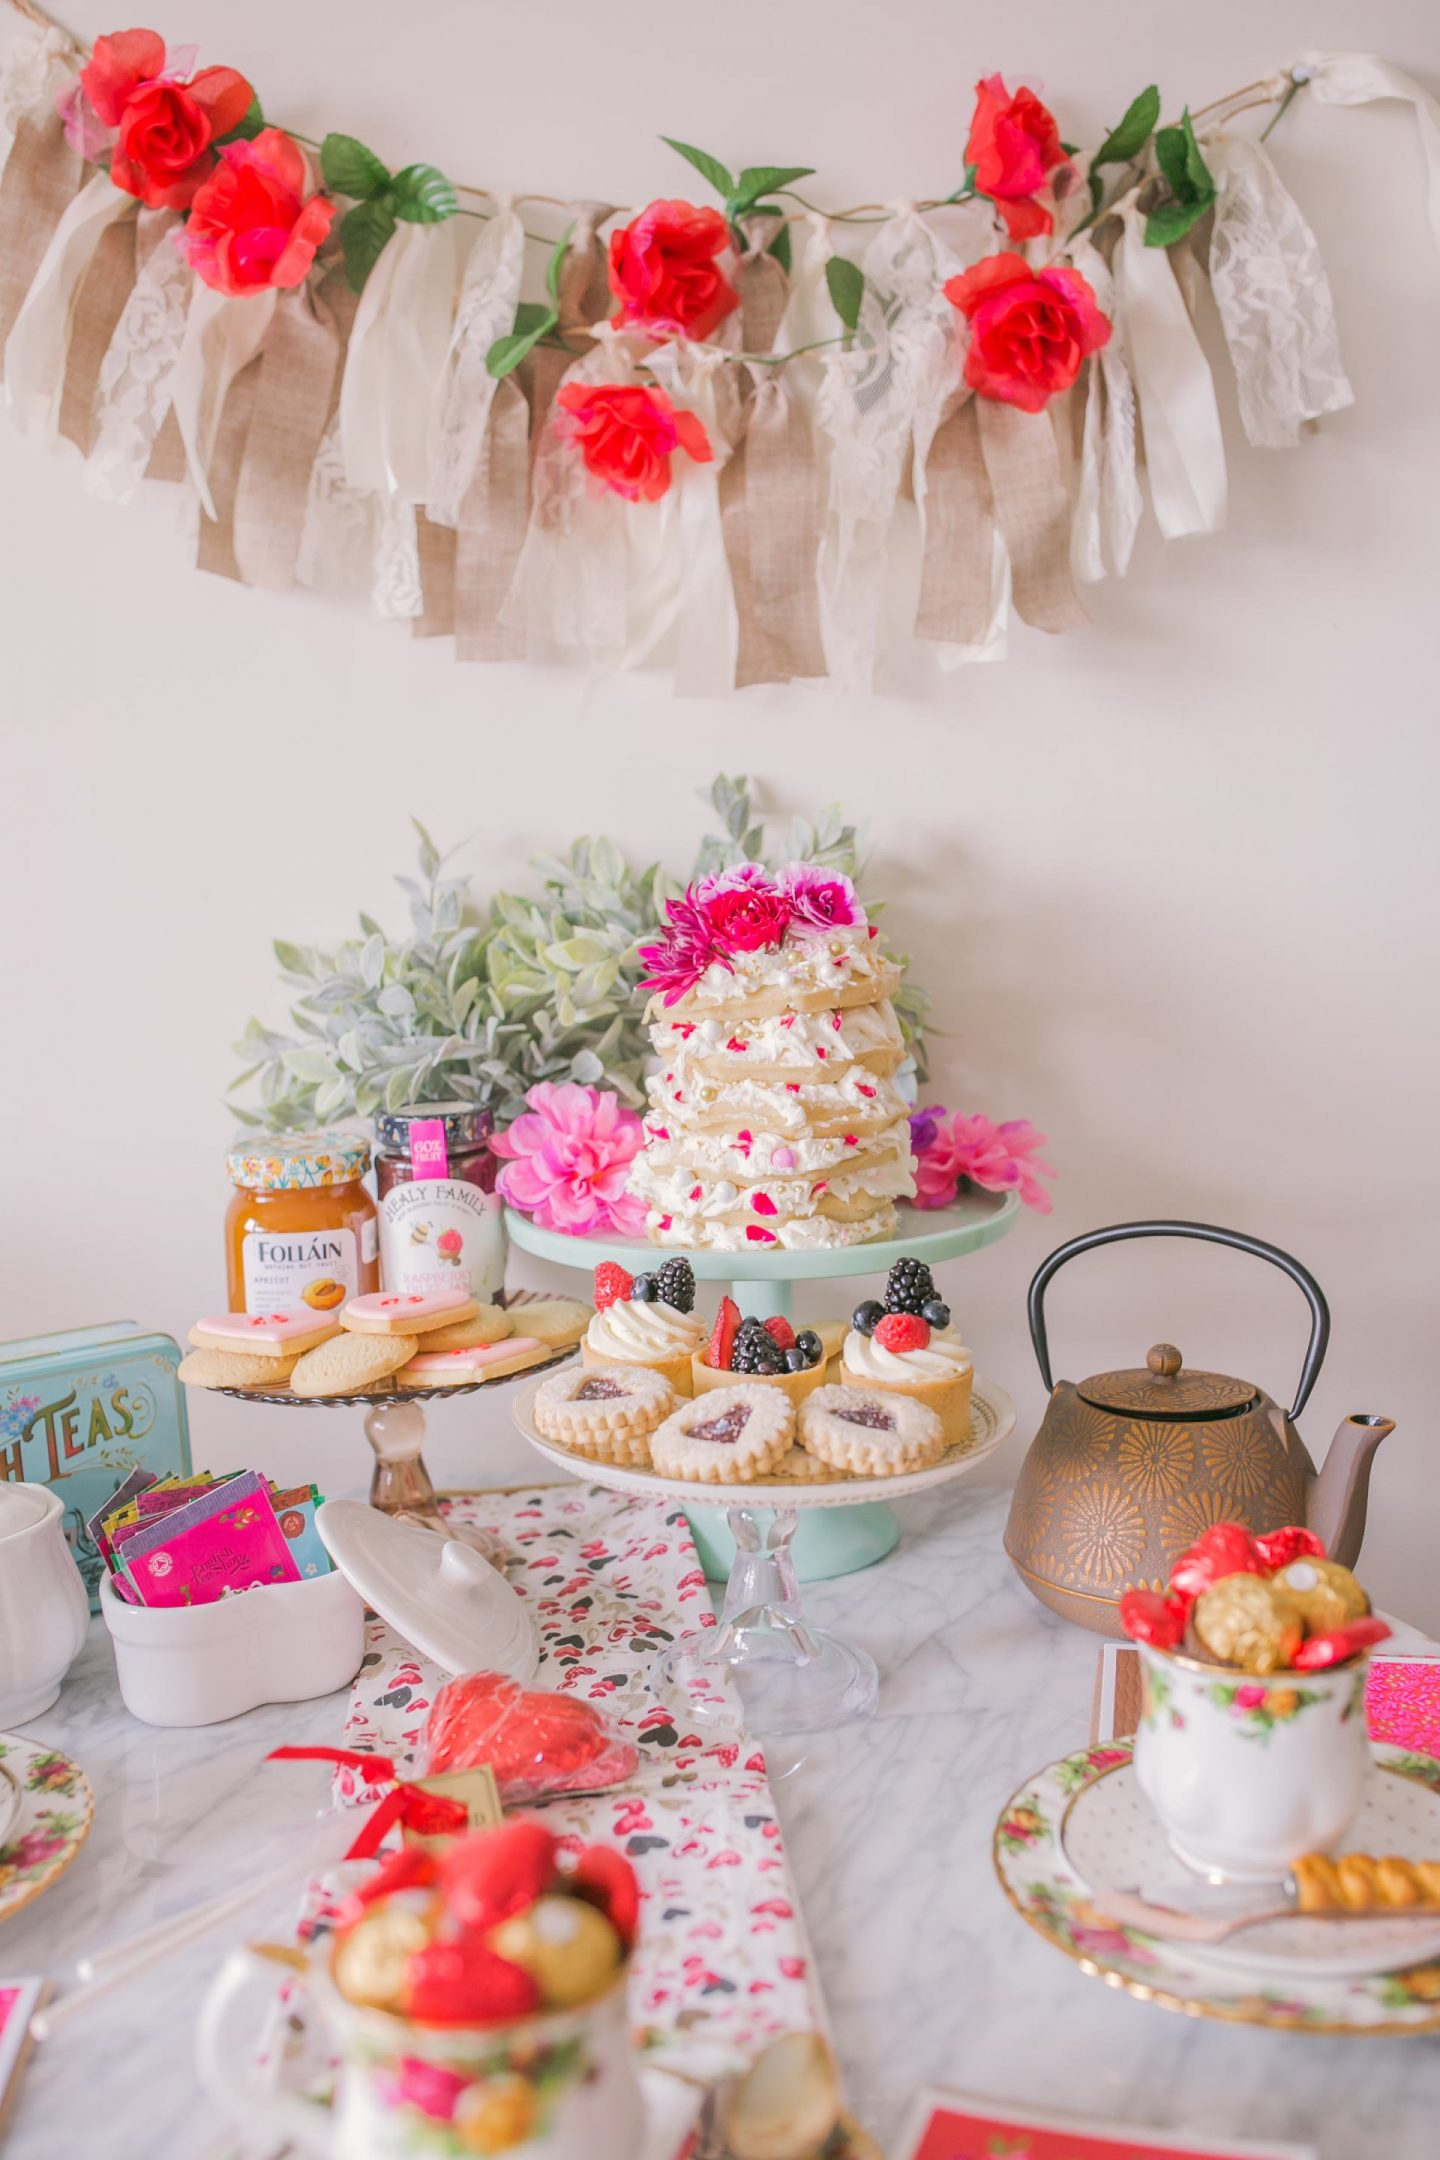 Valentine's Day table set up inspiration decor